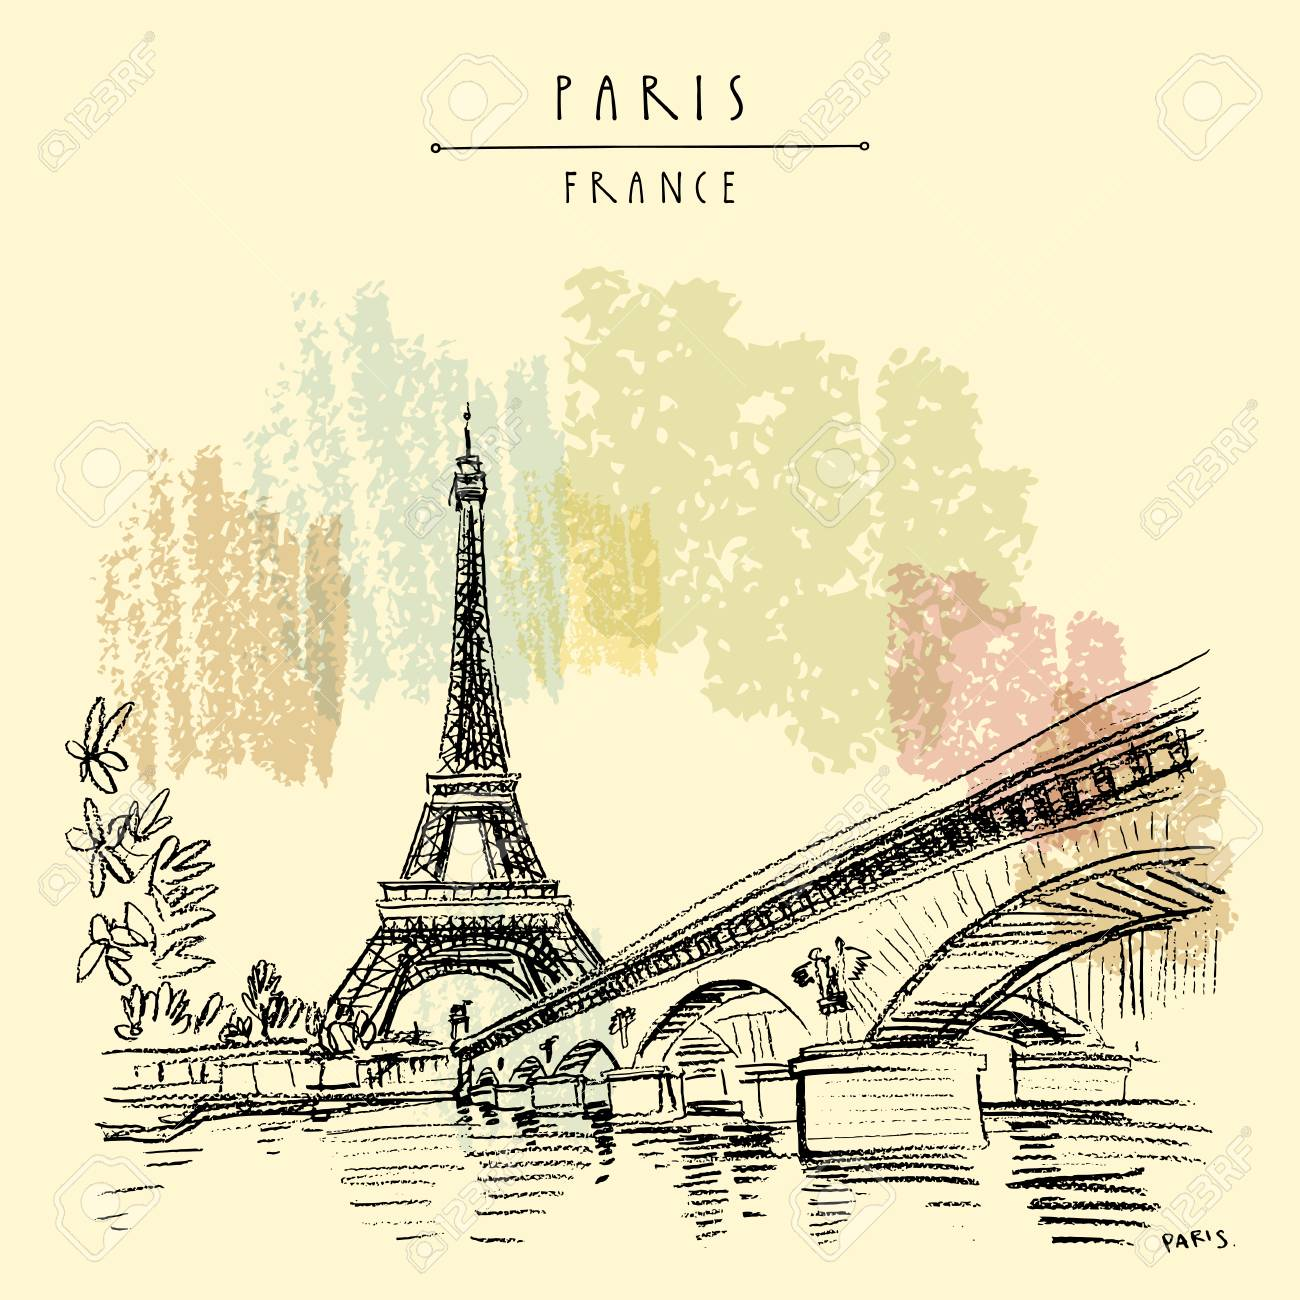 Eiffel Tower in Paris, France. Bridge and water. Hand drawing in retro style. Travel sketch. Vintage hand drawn touristic postcard, poster or book illustration in vector - 111830165